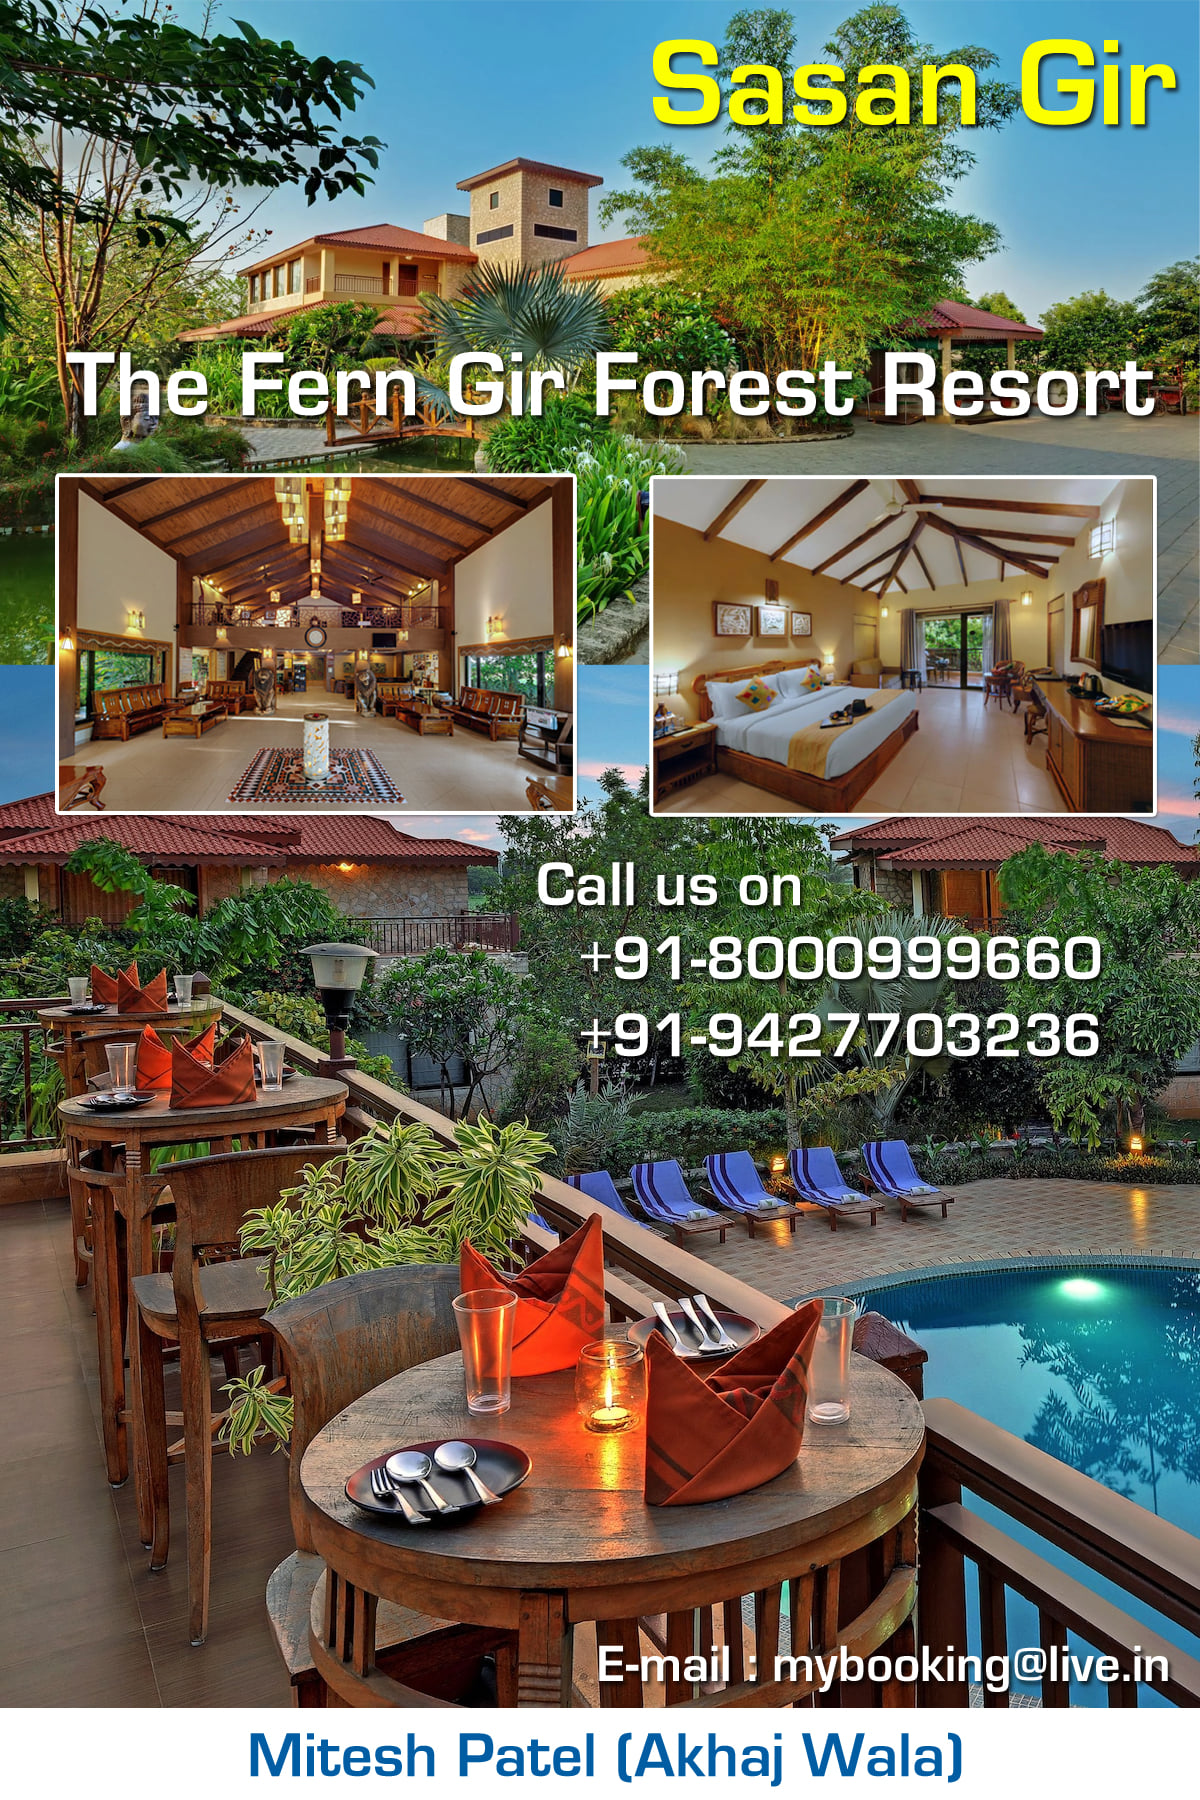 The Fern Gir Forest Resort - Experience world-class service at The Fern Gir Forest Resort Located next to Gir Lion Sanctuary, the eco-friendly Fern Gir Forest Resort in Sasan Gir offers an outdoor pool, pampering spa treatments and a gym. It enjoys beautiful views of the Hiran River and the surrounding hills. Parking is free.  Air-conditioned cottages and tents have a private balcony with views of the natural surroundings. All rooms come with a flat-screen TV, minibar and personal safe. En suite bathrooms have shower facilities.  Fern Gir Forest Resort is 50 km from Junagadh and 110 km from Diu Airport. It is 160 km from Raikot Airport and 370 km from Ahmedabad Airport.  Guided nature trails, wildlife photography lessons and local village tours can be arranged by the tour desk. Urban Nirvana Spa features relaxing massage and a unique under-the-sky rainshower. A business centre is also available.  The Banyan Tree restaurant serves a selection of international dishes. Dining with a view is provided by the river-side Deck Restaurant. Snacks and fresh fruit juice can be enjoyed at the Pool Side Juice Bar. AIR TICKETING All Domestic & International GDS & LCC Flight Booking Group Fare / Individual Fare / Student Fare / Corporate Fare and more... RAILWAY TICKETING  HOTEL BOOKING All Budget & Premium - Domestic & International Hotel Booking BUS TICKETING Daily Service Bus Ticketing – All Major Operators Available Across India GSRTC Bus Ticket Booking PASSPORT SERVICES Fresh Passport / Renew Passport /Police Clearance Certificate / Correction in Passport / Changes in Particular Details VISA SERVICES Tourist Visa - USA, UK, CANADA, AUSTRALIA, SINGAPORE, DUBAI, MALAYSIA, THAILAND & More... TOUR PACKAGES Domestic & International Tour Packages MONEY TRANSFER SERVICES Western Union (Receive Money From Abroad in Few Minutes) Transfast (Received Money From Abroad) Domestic Money Transfer - Money Transfer in India REMMITANCE SERVICES (Wire Transfer - TT) Education Remmitance Family Maintenance Forex Card (New/Reload) INSURANCE SERVICES Travel-Overseas Insurance (BhartiAxa, ICICI, Bajaj, Digit, Religare, Reliance, TataAIA & More...) HDFC Life Insurance Services CAR/BUS RENTAL Tavera, Innova, Xylo, Indica, Indigo & More…Across India  UTILITY BILL PAYMENT  Landline & Mobile Bill Payment – Tata, Reliance, BSNL, Idea, Airtel, Vodafone & More...  Electricity Bill Payment – Torrent Power, UGVCL & More..  Gas Bill Payment – Adani Gas Ltd., Gujarat Gas, Mahanagar Gas(Mumbai)  Insurance Premium Collection – LIC, Aviva Life Insurance, Kotak Life Insurance, Max Newyork Life Insurance, Birla Sun Life, Reliance Life Insurance, DLF Pramerica Life Insurance, Exide Life Insurance, ICICI Pru Life Insurance, TATA AIA Life Insurance, Bajaj Allianz Life Insurance, L and T General Insurance  Ground Floor-11, Vishwas Shopping Center-1, R.C.Technical Road, Ghatlodia, Ahmedabad - 380061. Contact No. : +91-8000999660 / +91-9427703236 E-mail : info@aksharonline.com Website : www.aksharonline.com